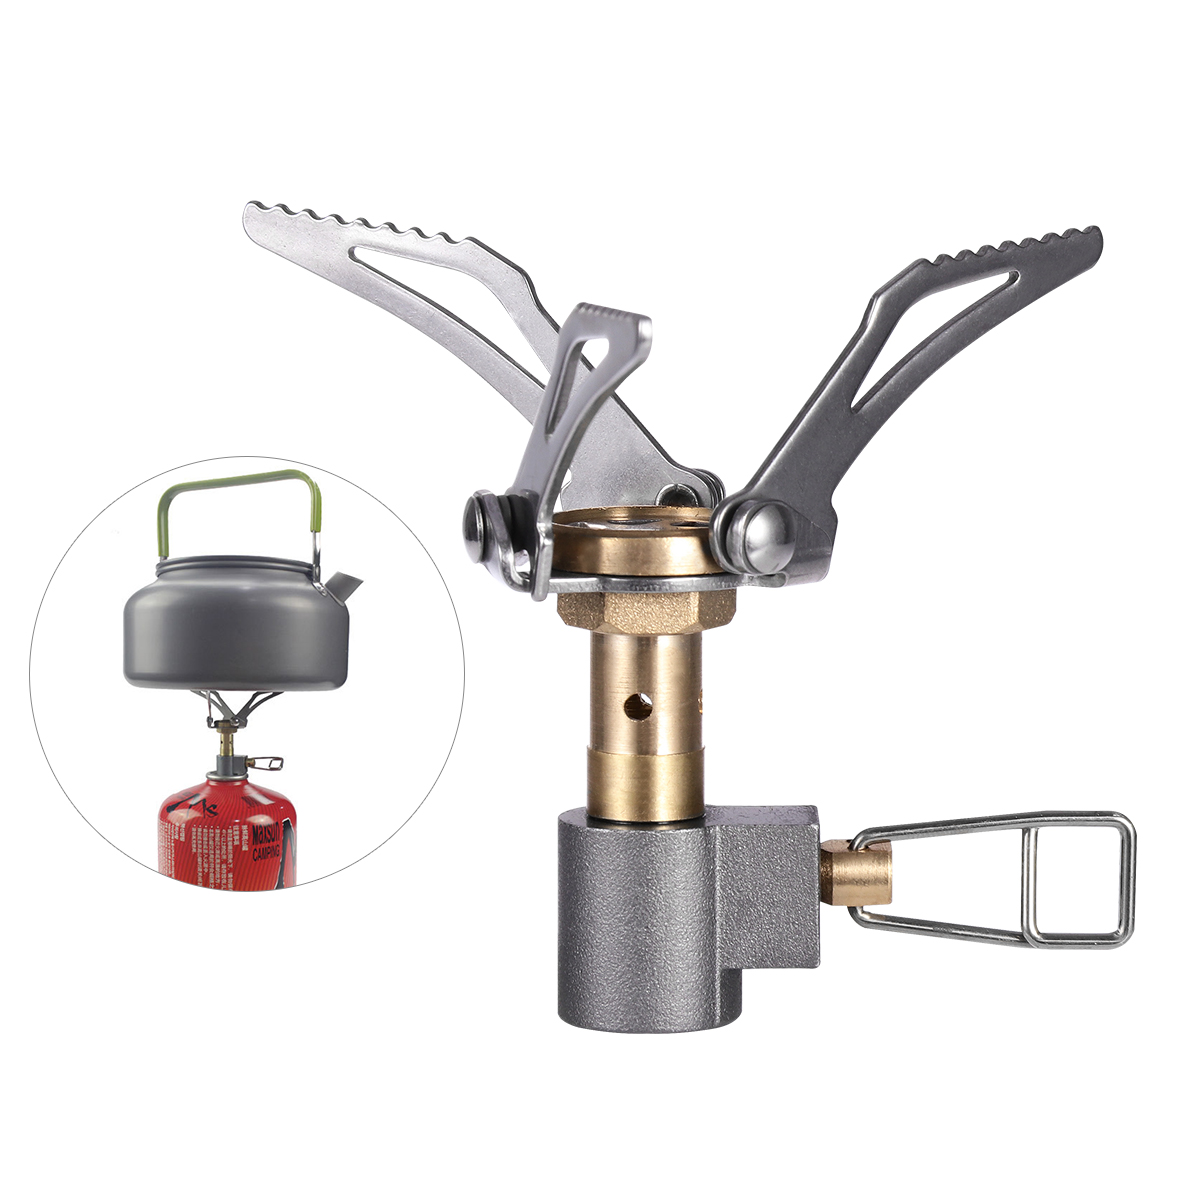 WINOMO Ultralight Mini Pocket Stove 3000W Portable Folding Gas Stove Camping Cookware Stove Outdoor Cooking Burner